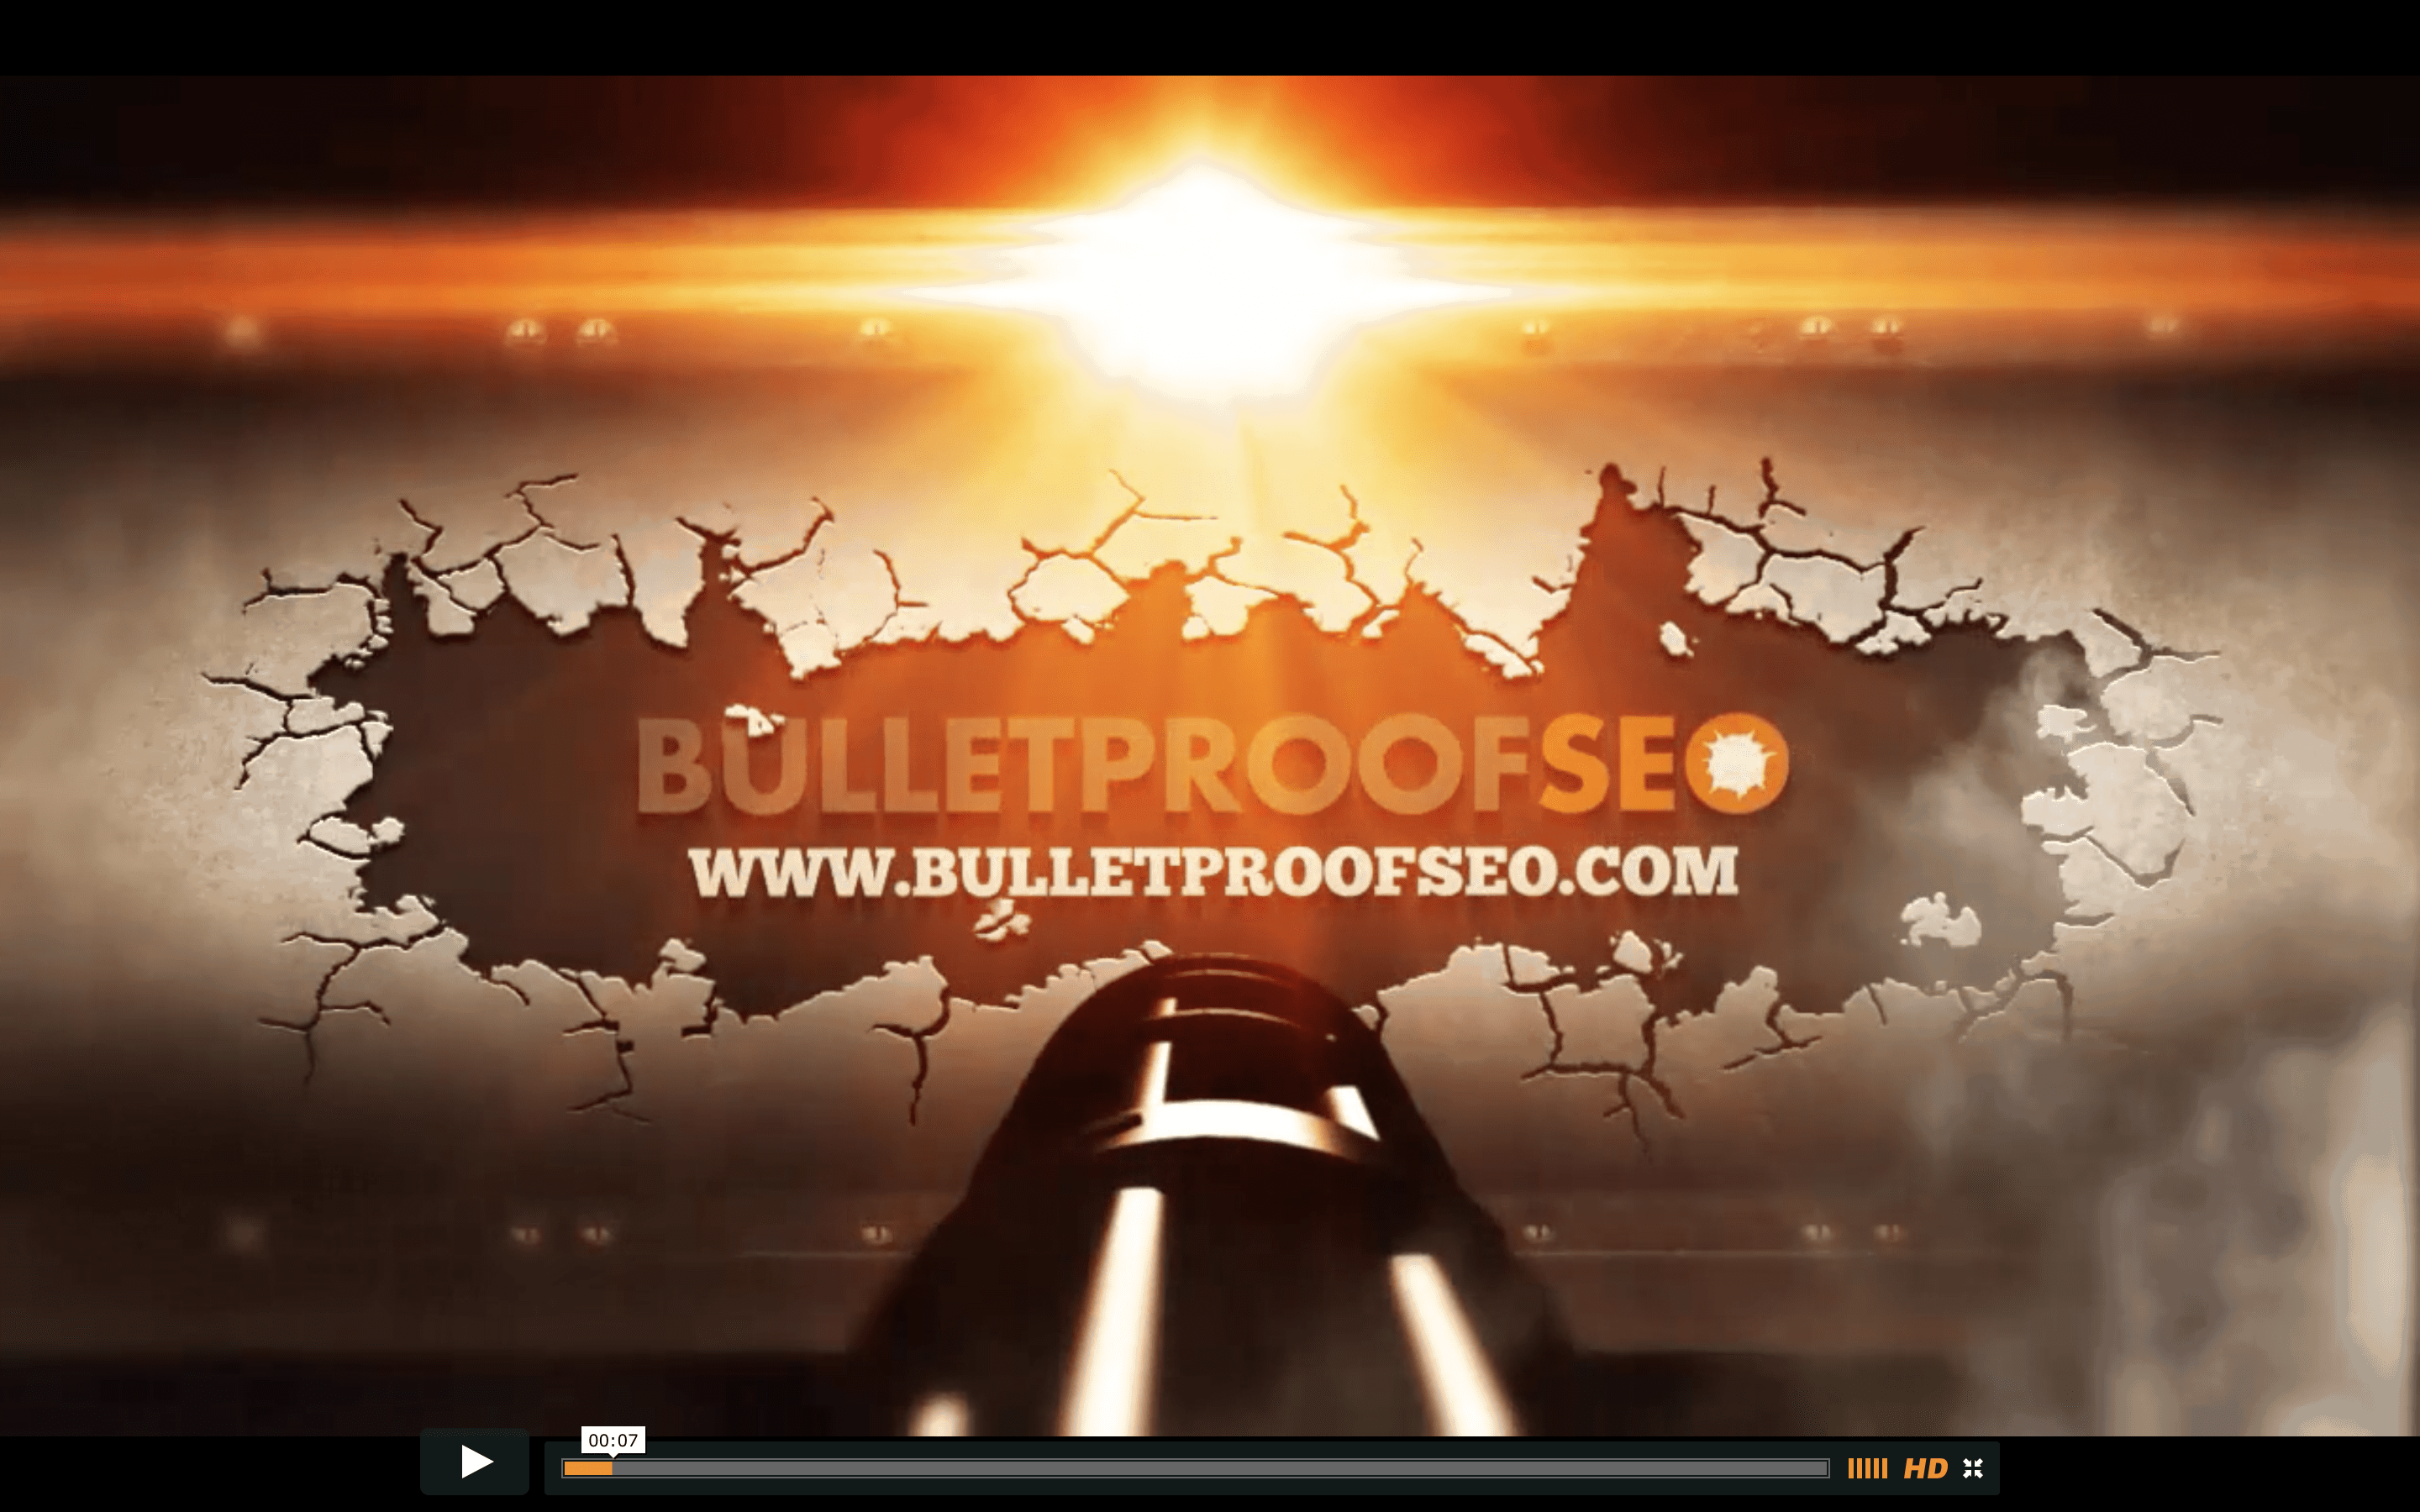 Bulletproof SEO Review: Stephen Floyd Really Overdelivers